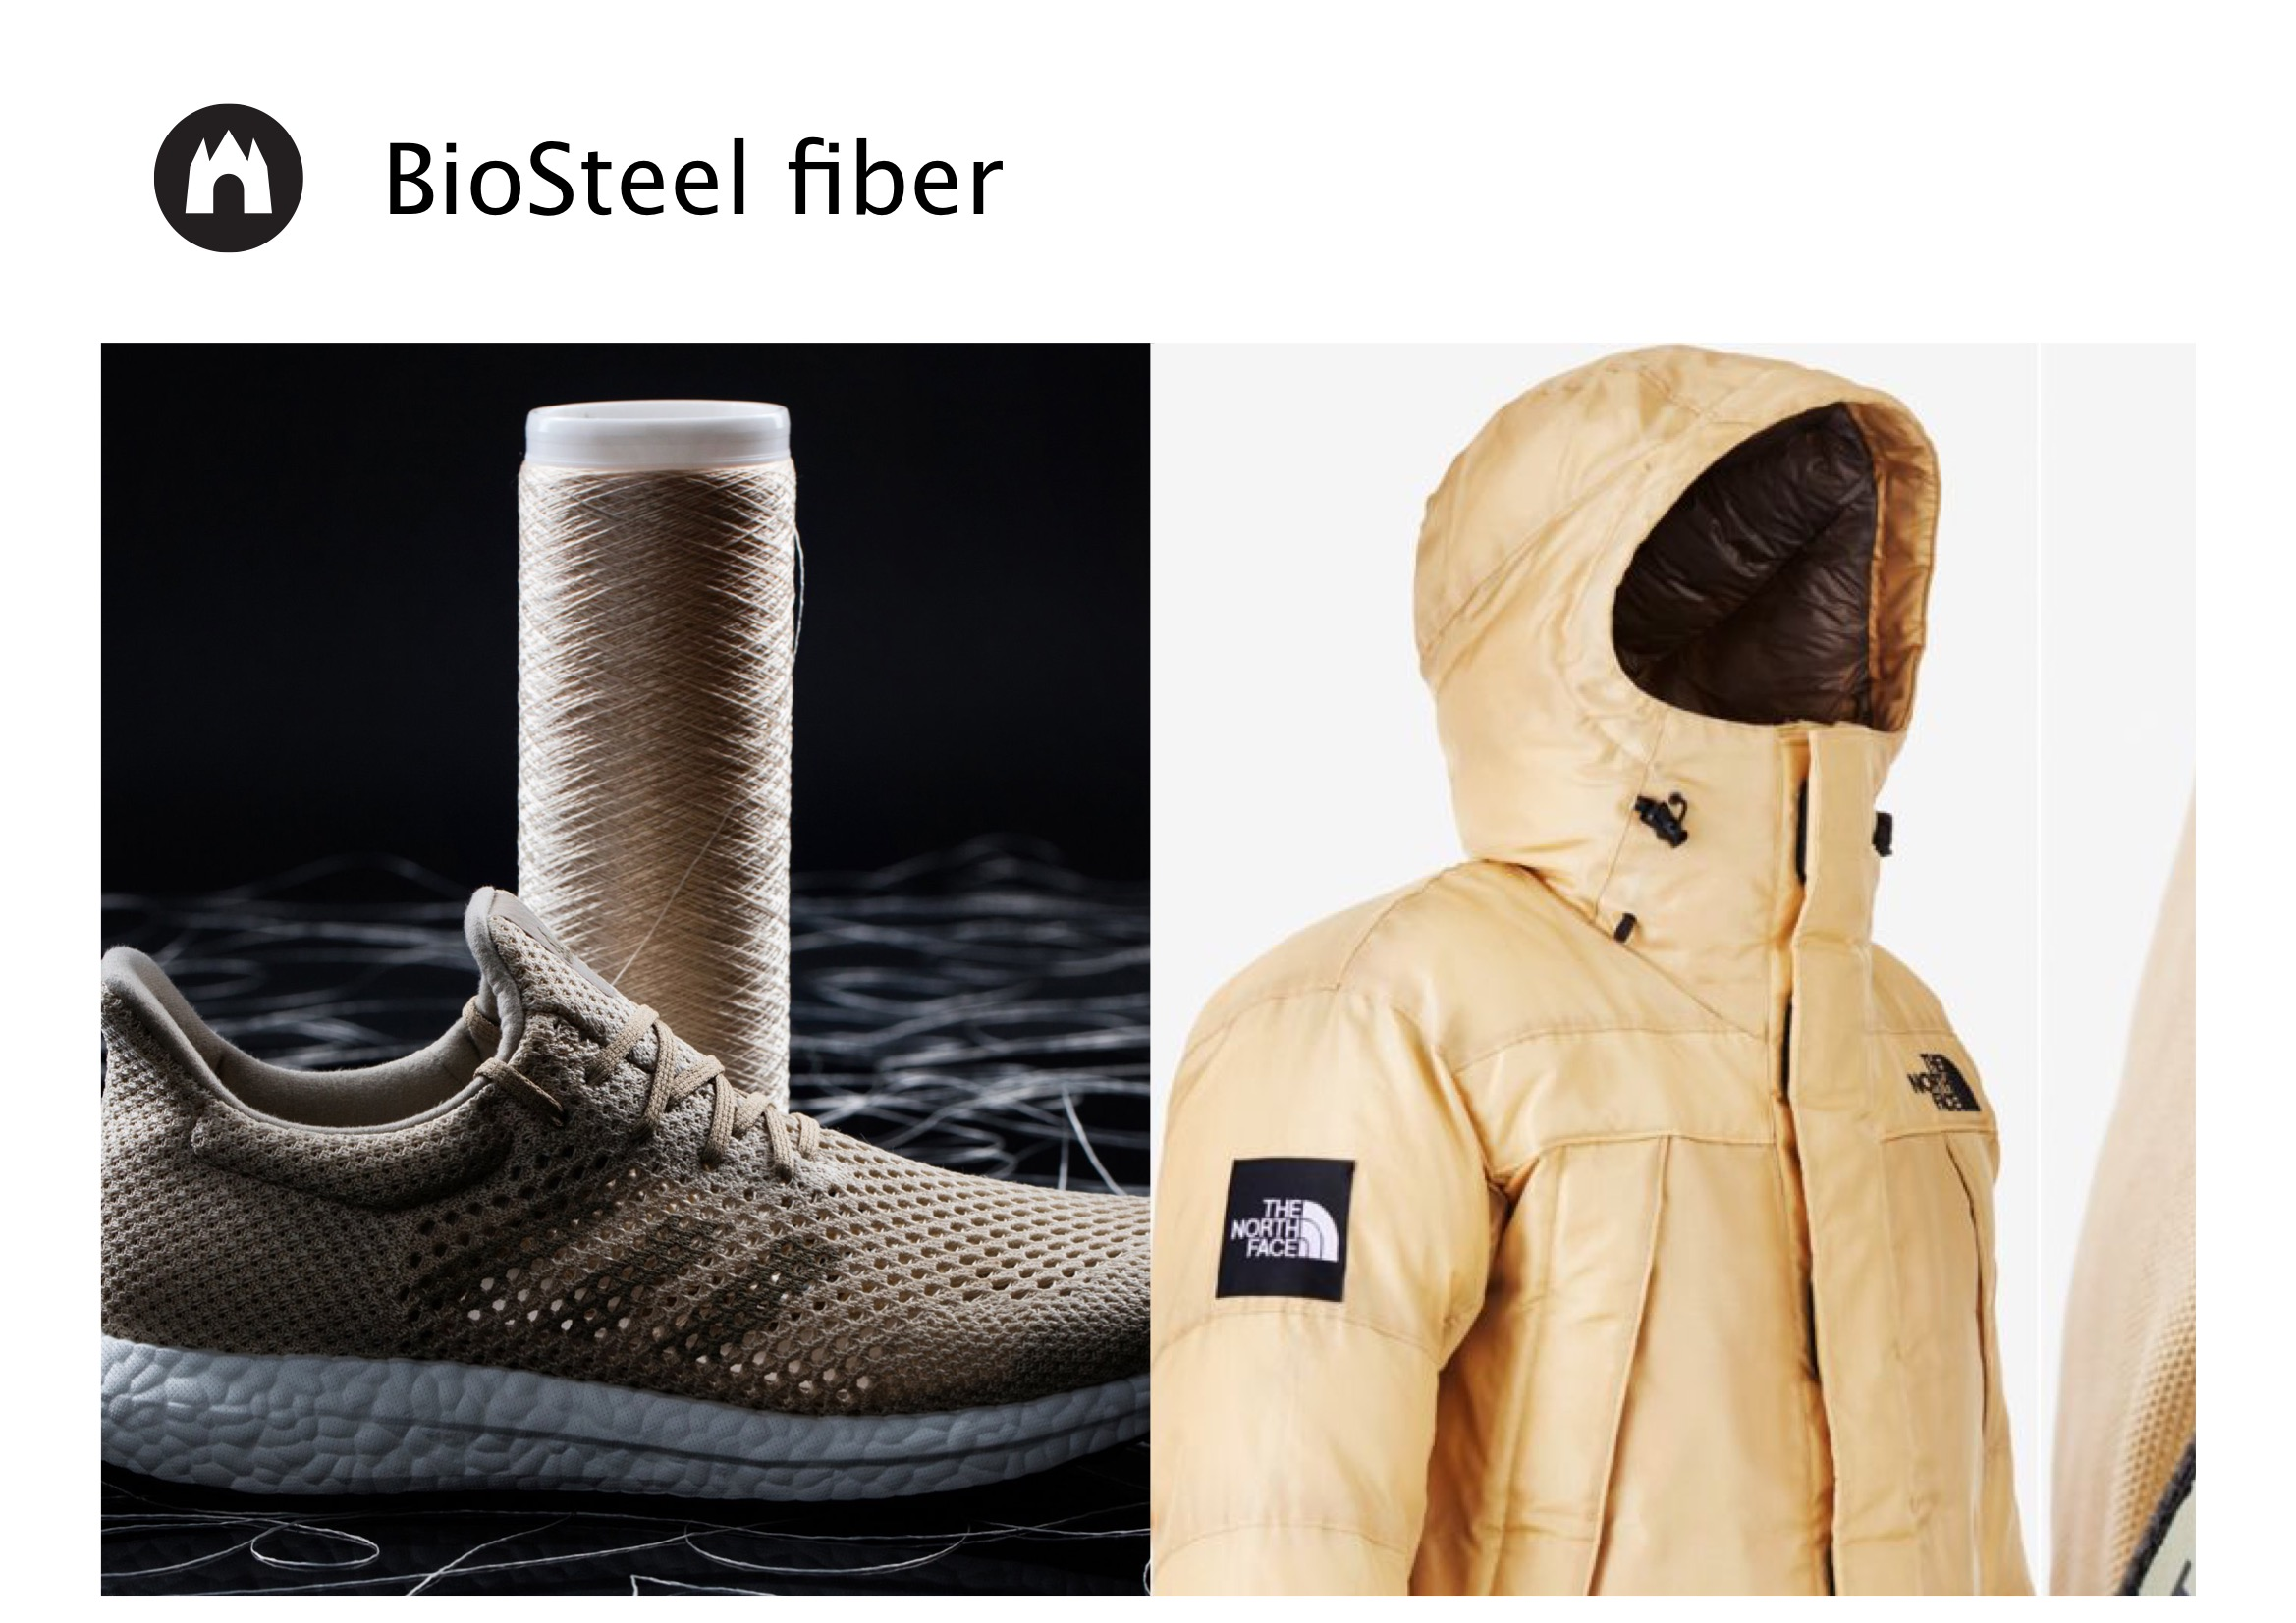 Image of BioSteel fiber